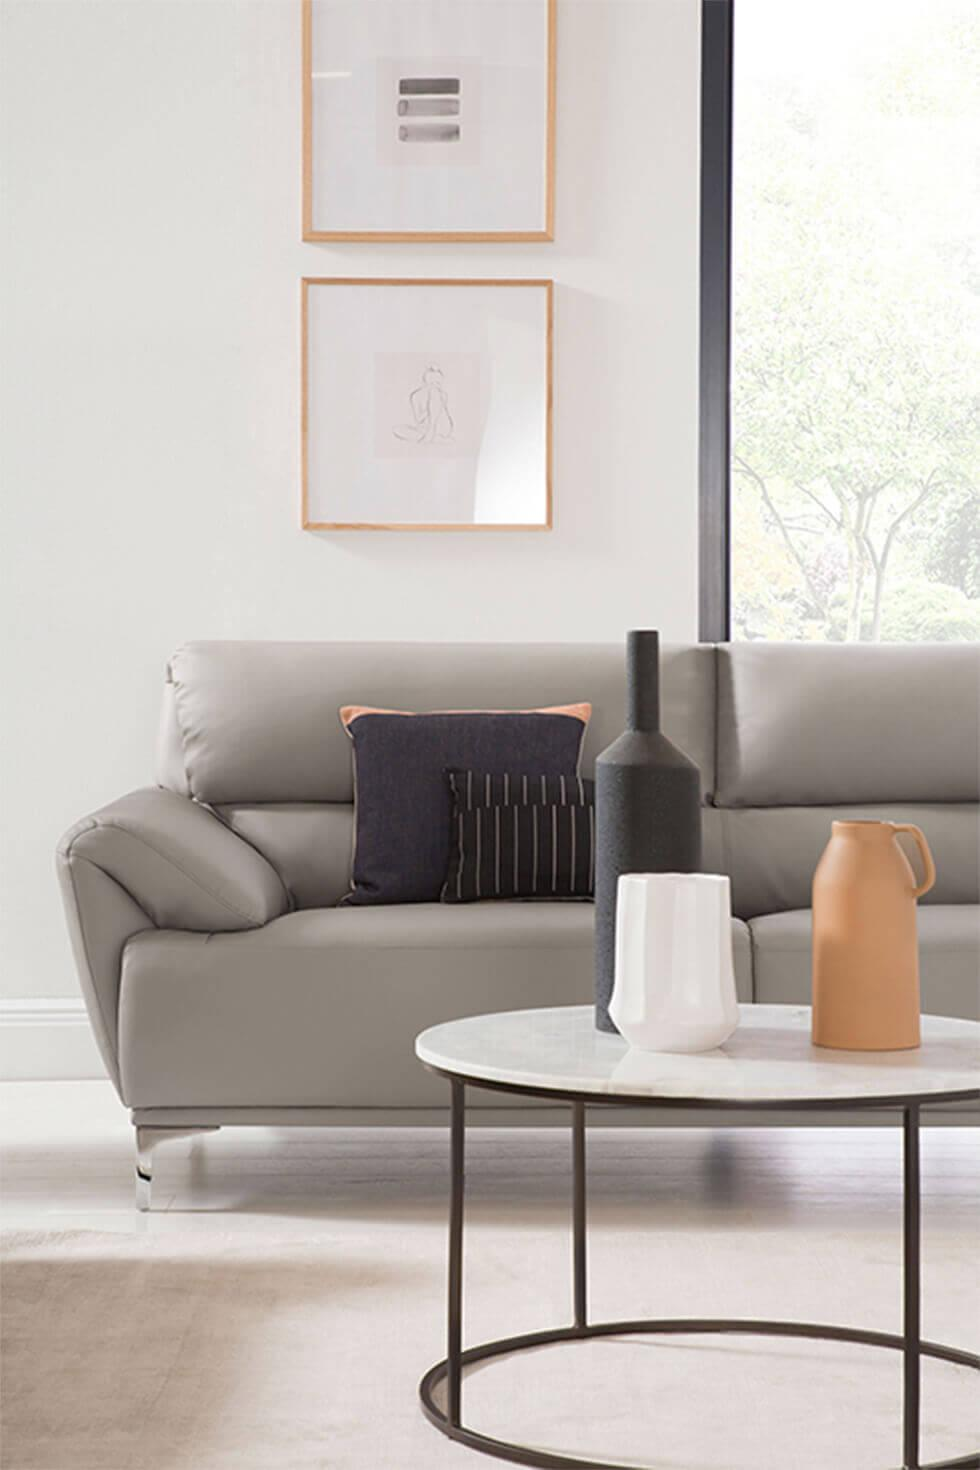 Minimalist living room with white walls, grey sofa and black and terracotta decor